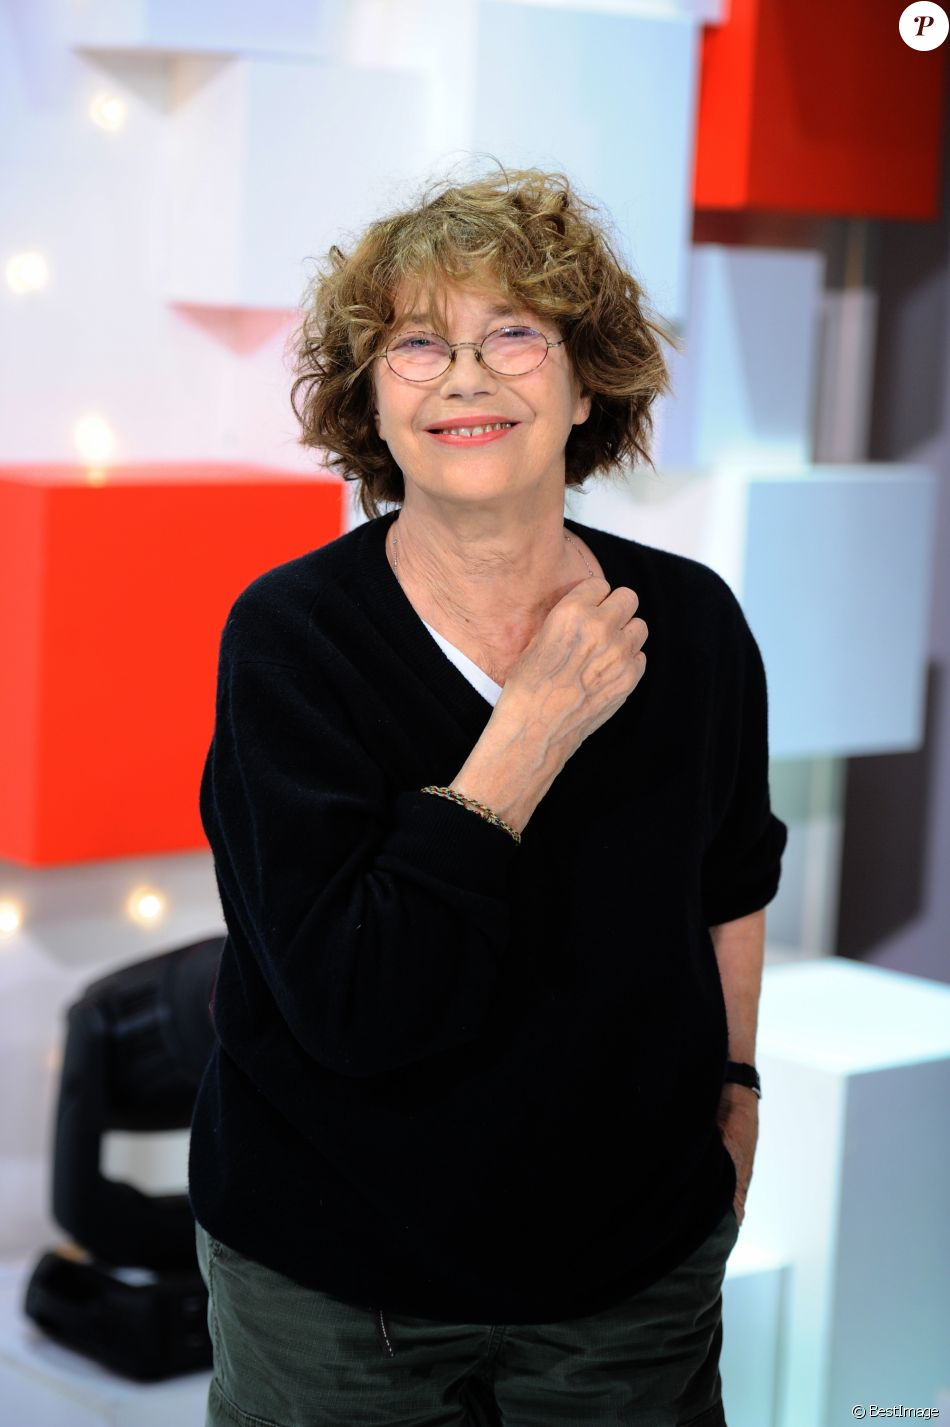 Exclusif - Jane Birkin - Enregistrement de l'émission vivement dimanche au studio gabriel le 8 octobre 2018. Diffusion le 14 octobre 2018 sur france 2 . © Guillaume Gaffiot / Bestimage  No Web en Suisse / Belgique08/10/2018 - Paris